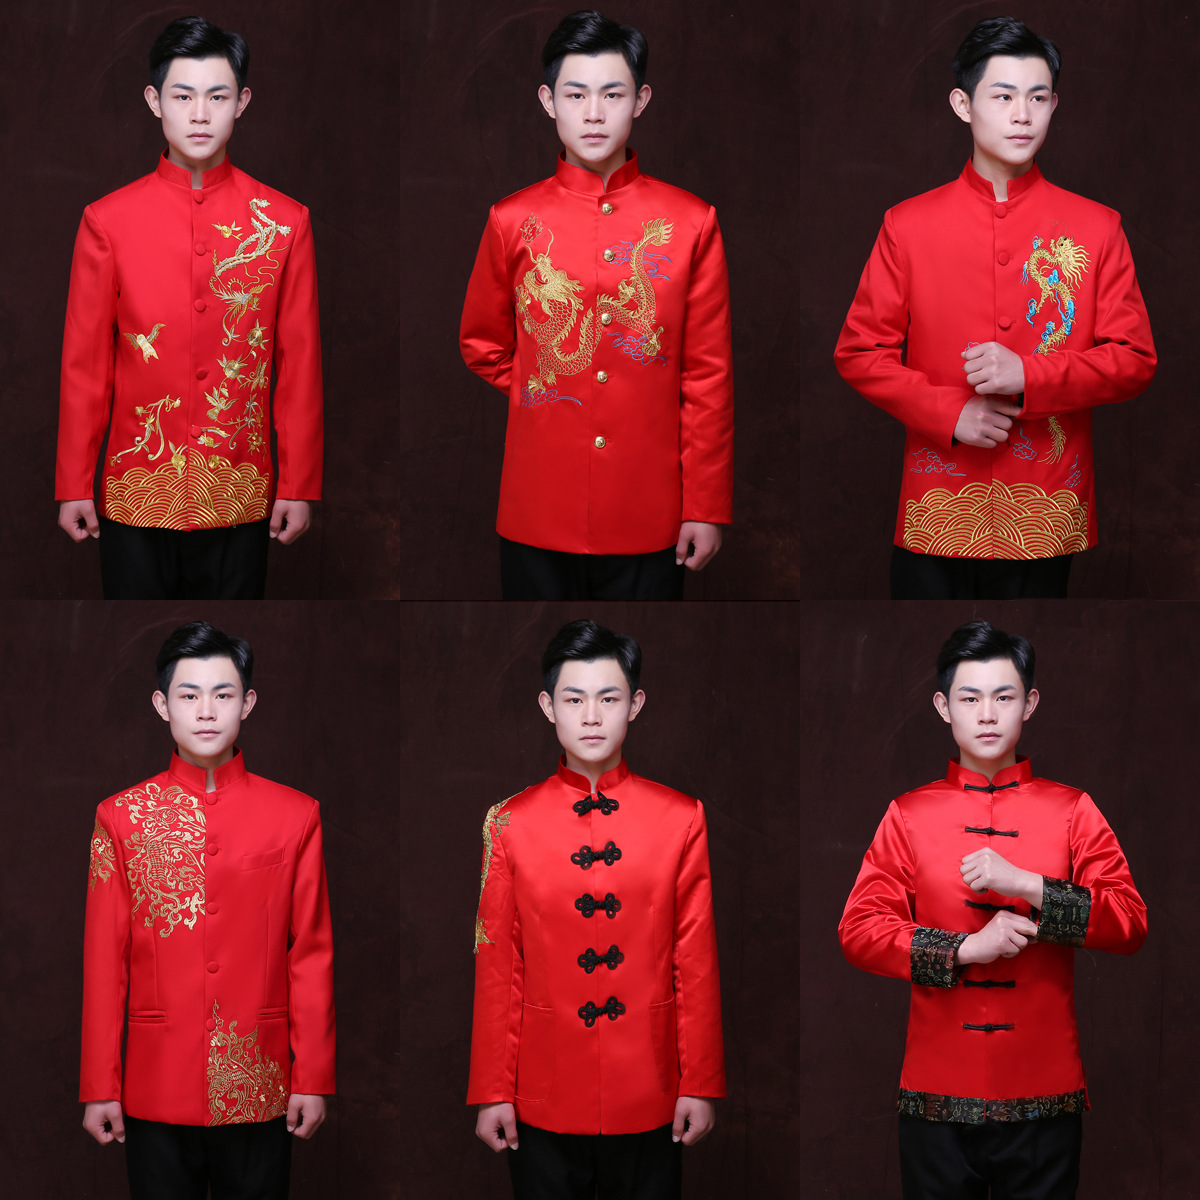 Manches longues rouge chinois traditionnel marié hauts ancien Tang Costume broderie Dragon Toast vêtements chinois tunique Costume 90